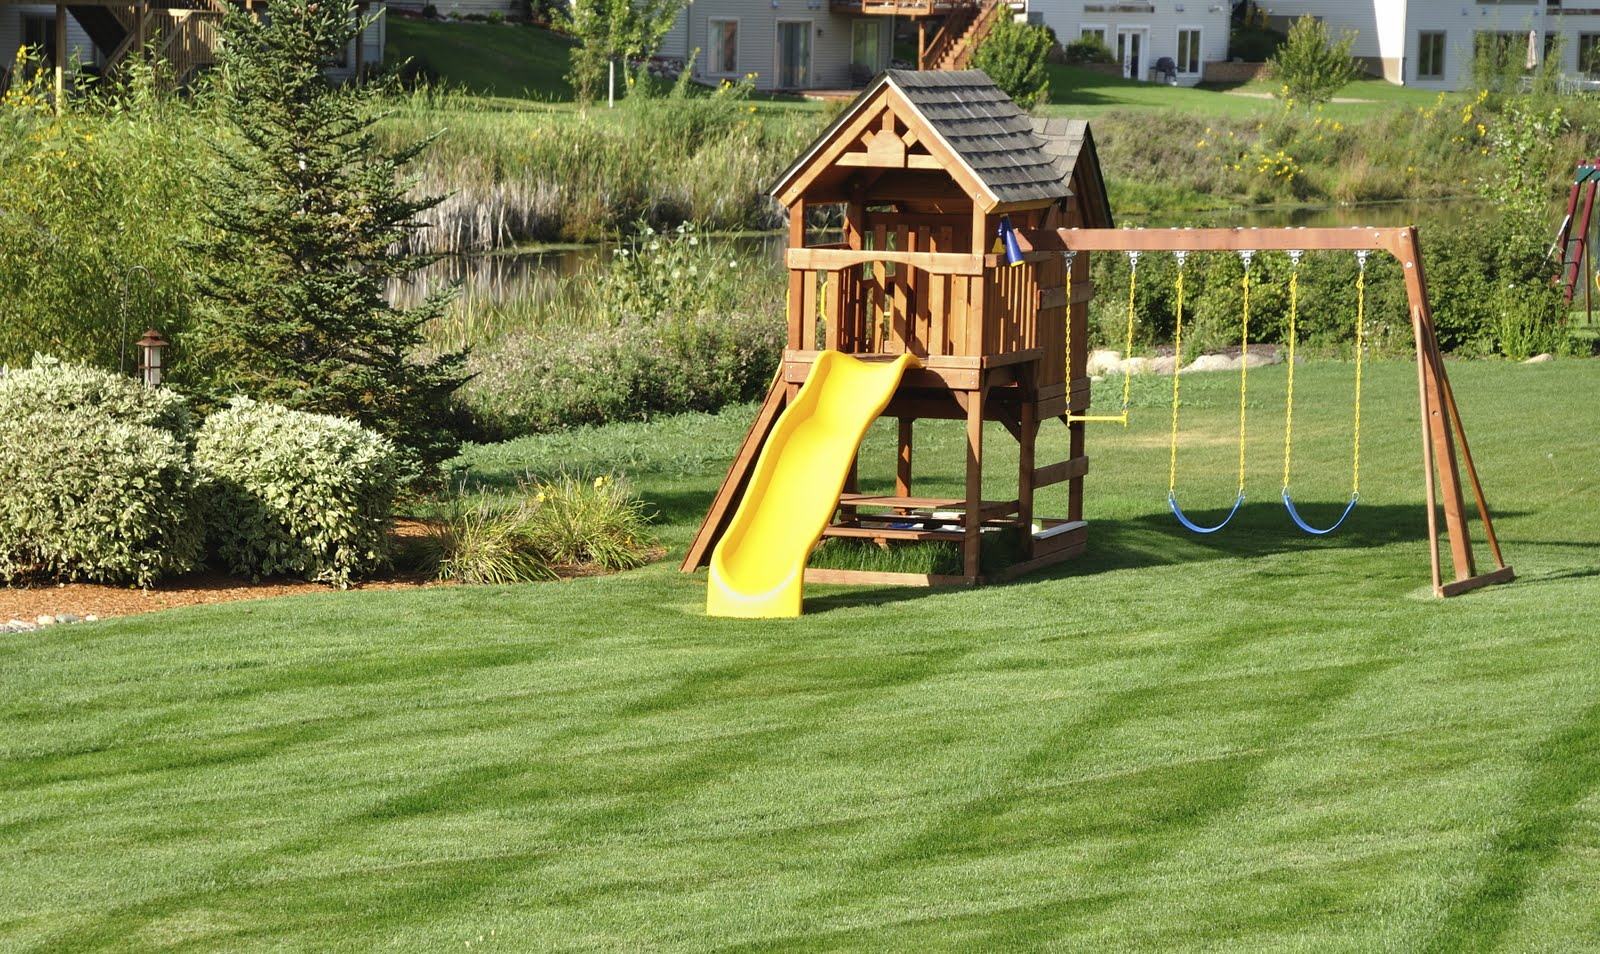 Backyard Playground Safety Issues